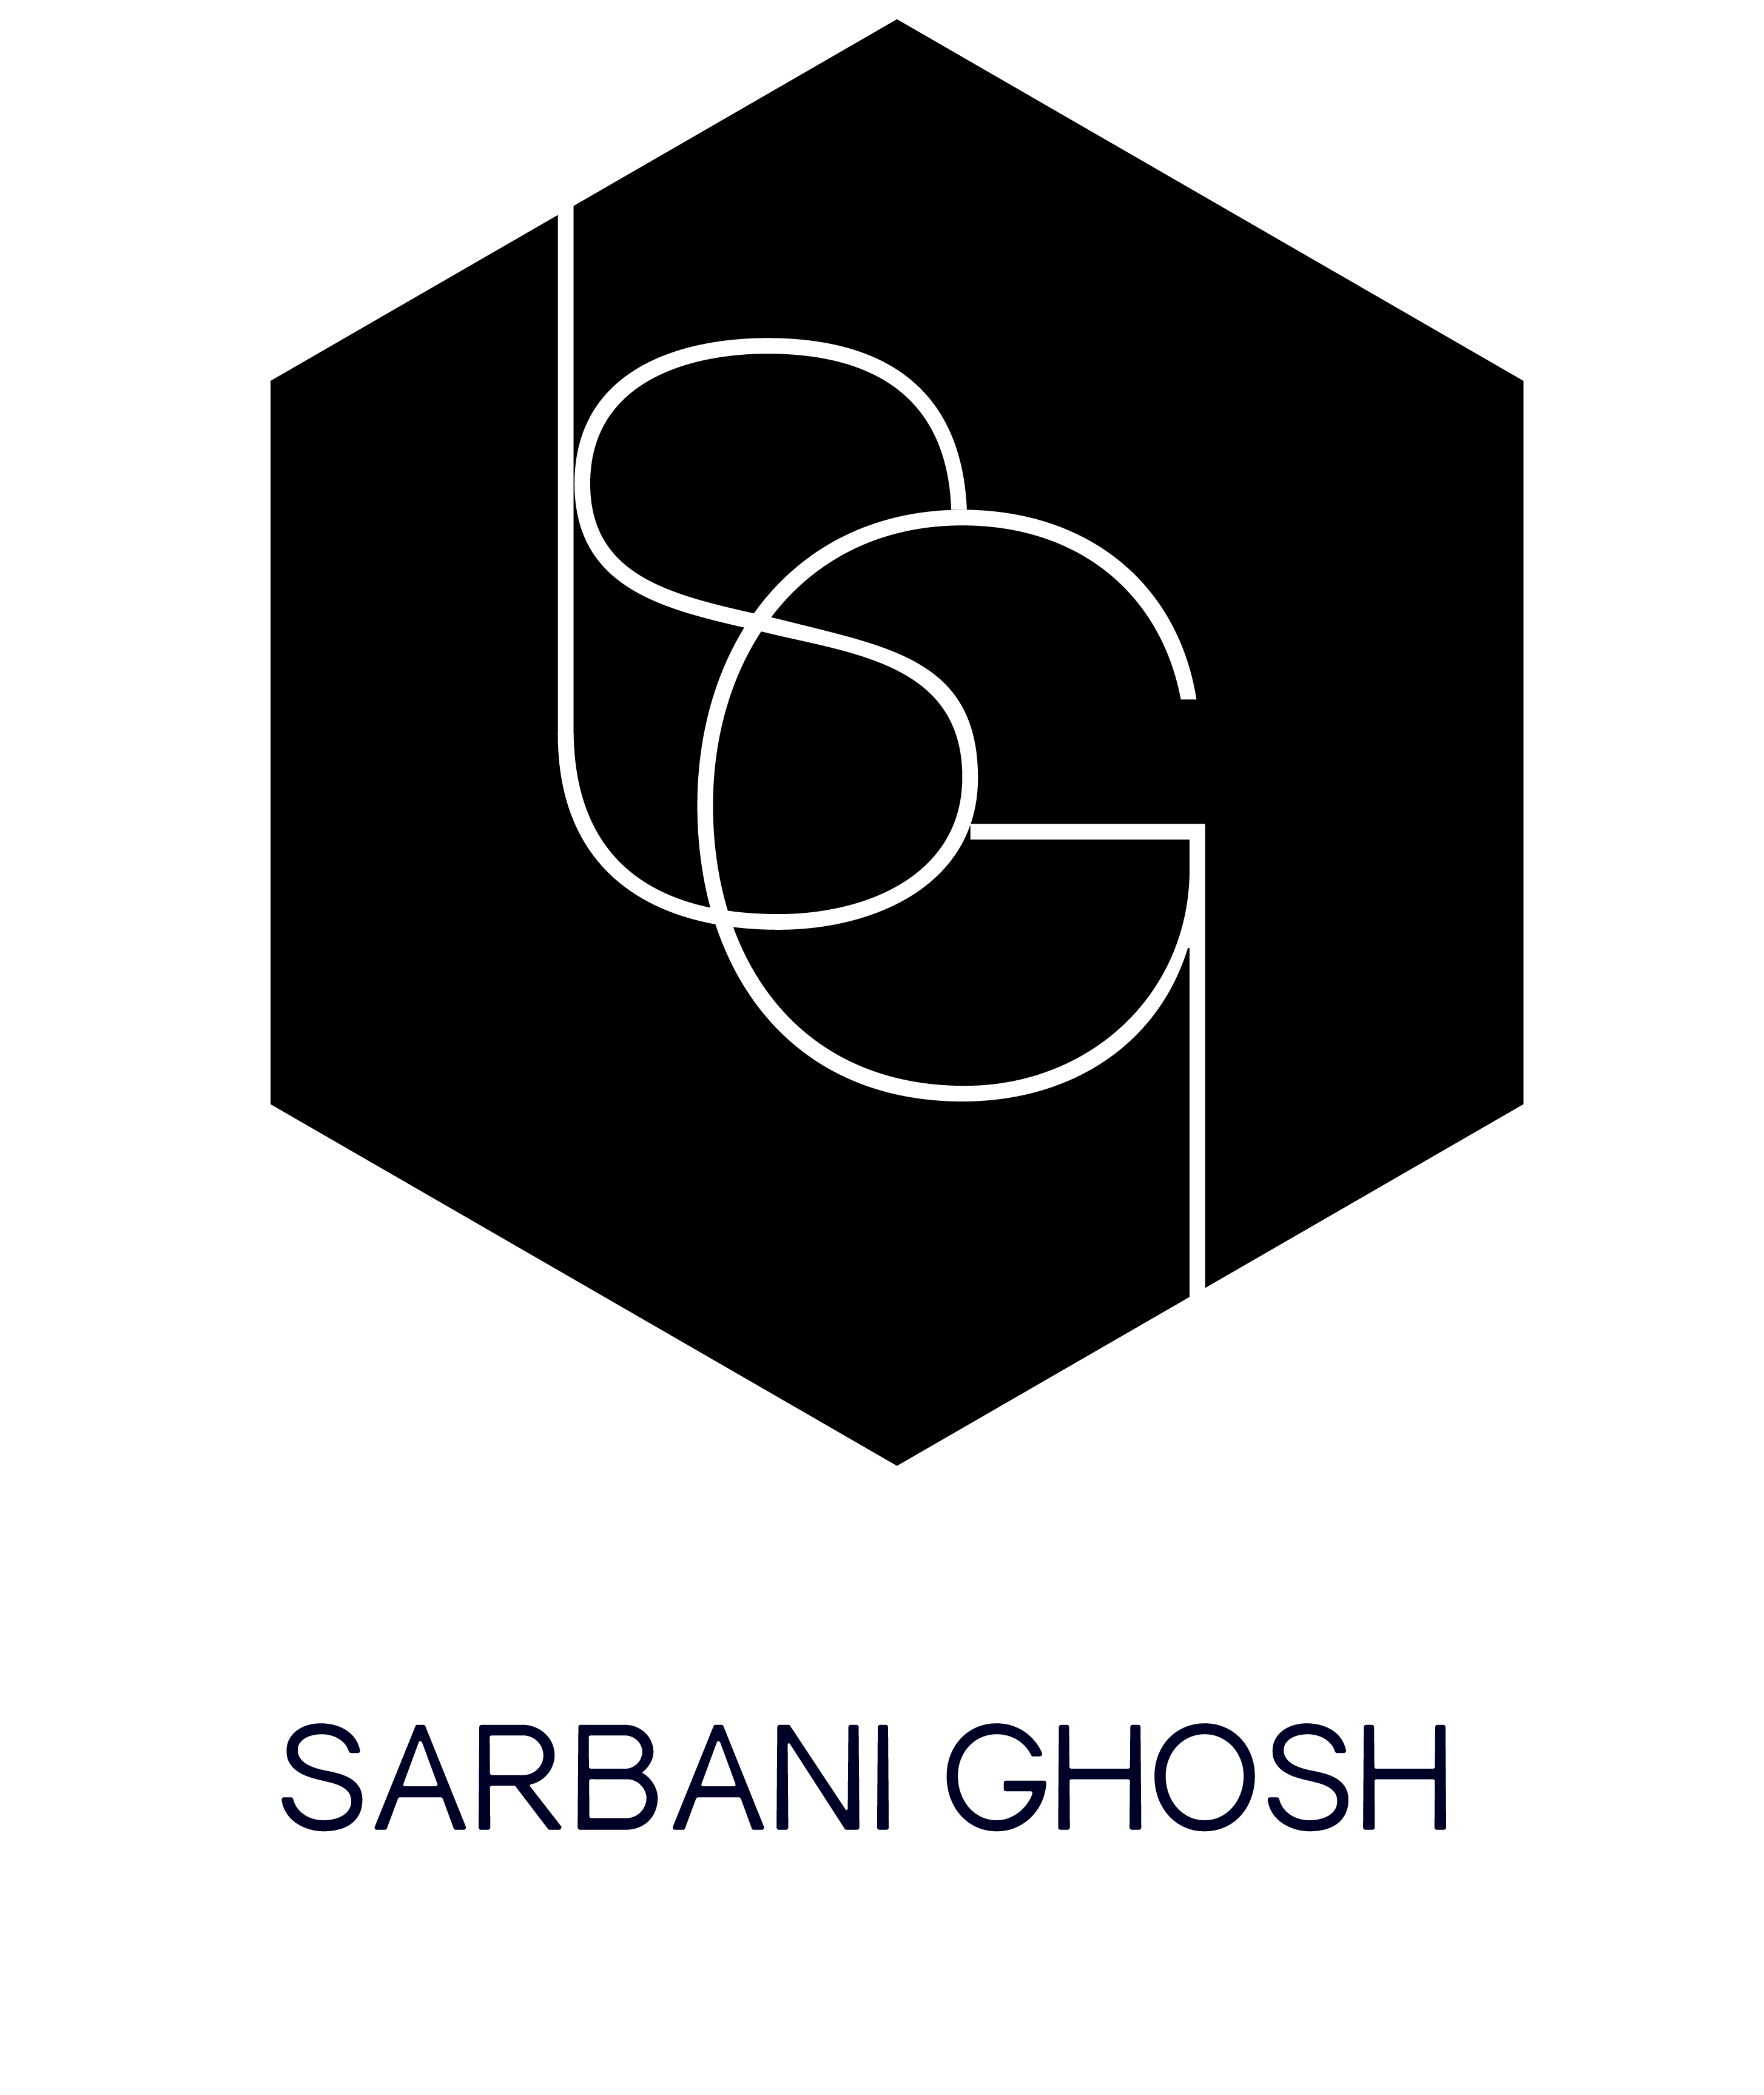 Sarbani Ghosh